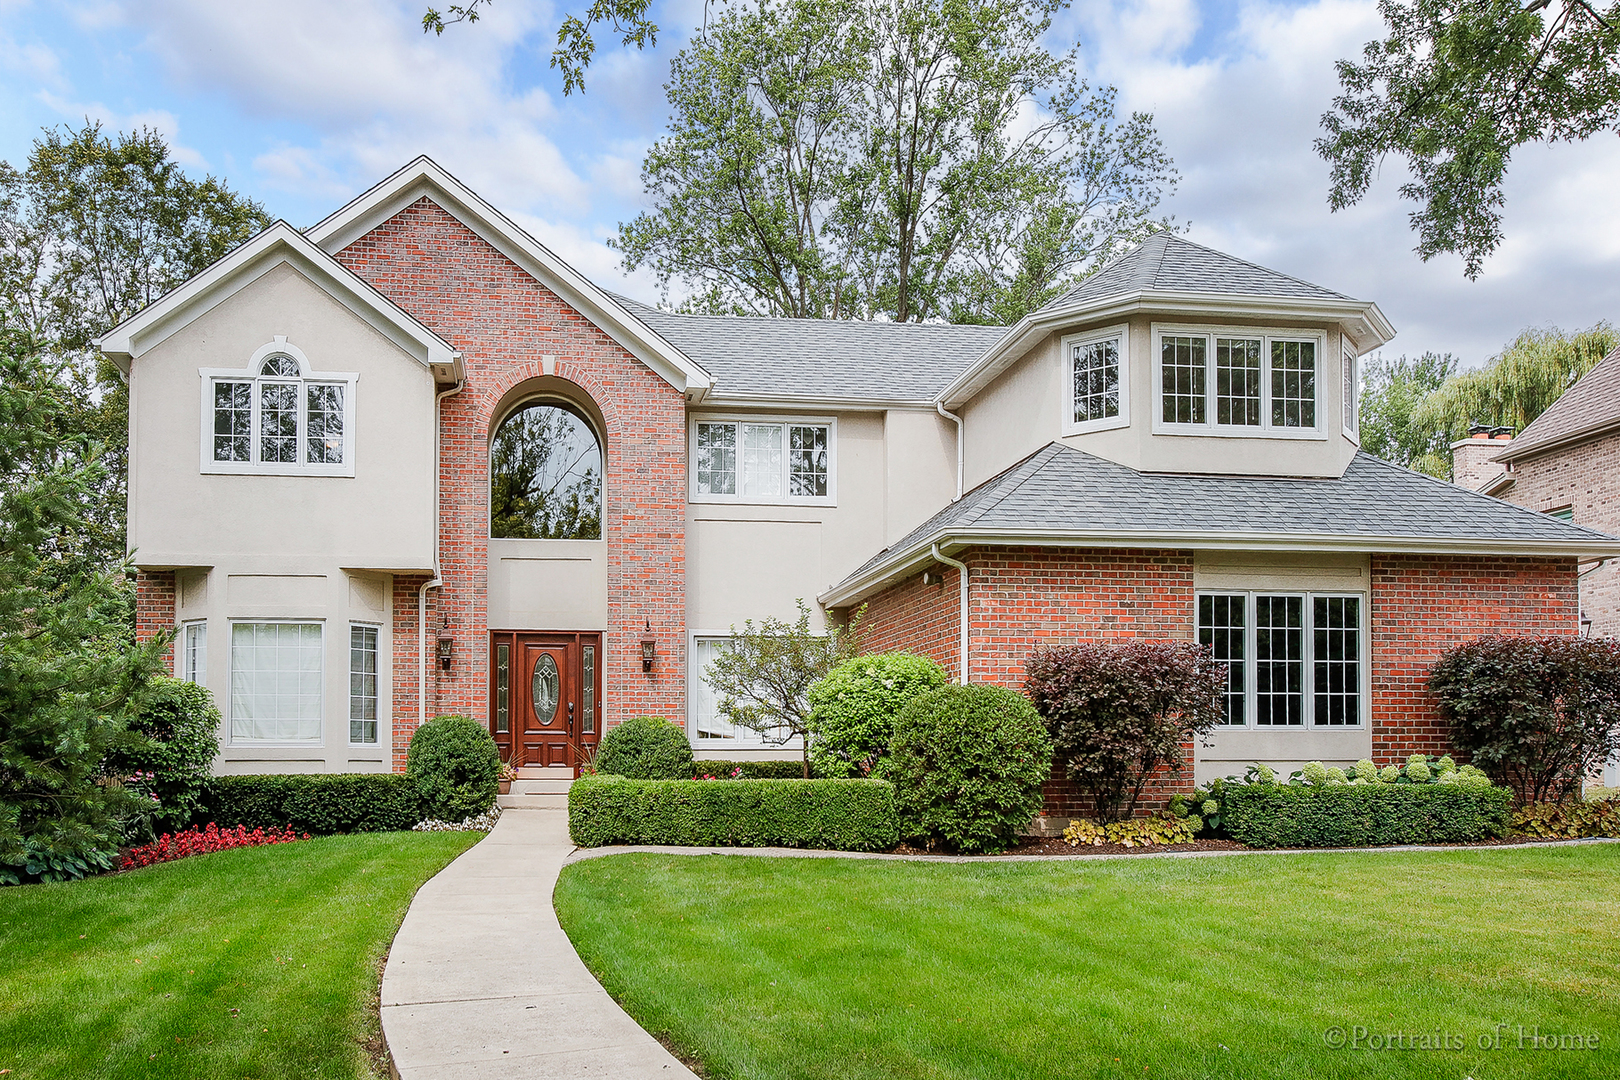 5714 South Grant Street, Hinsdale, Illinois 60521